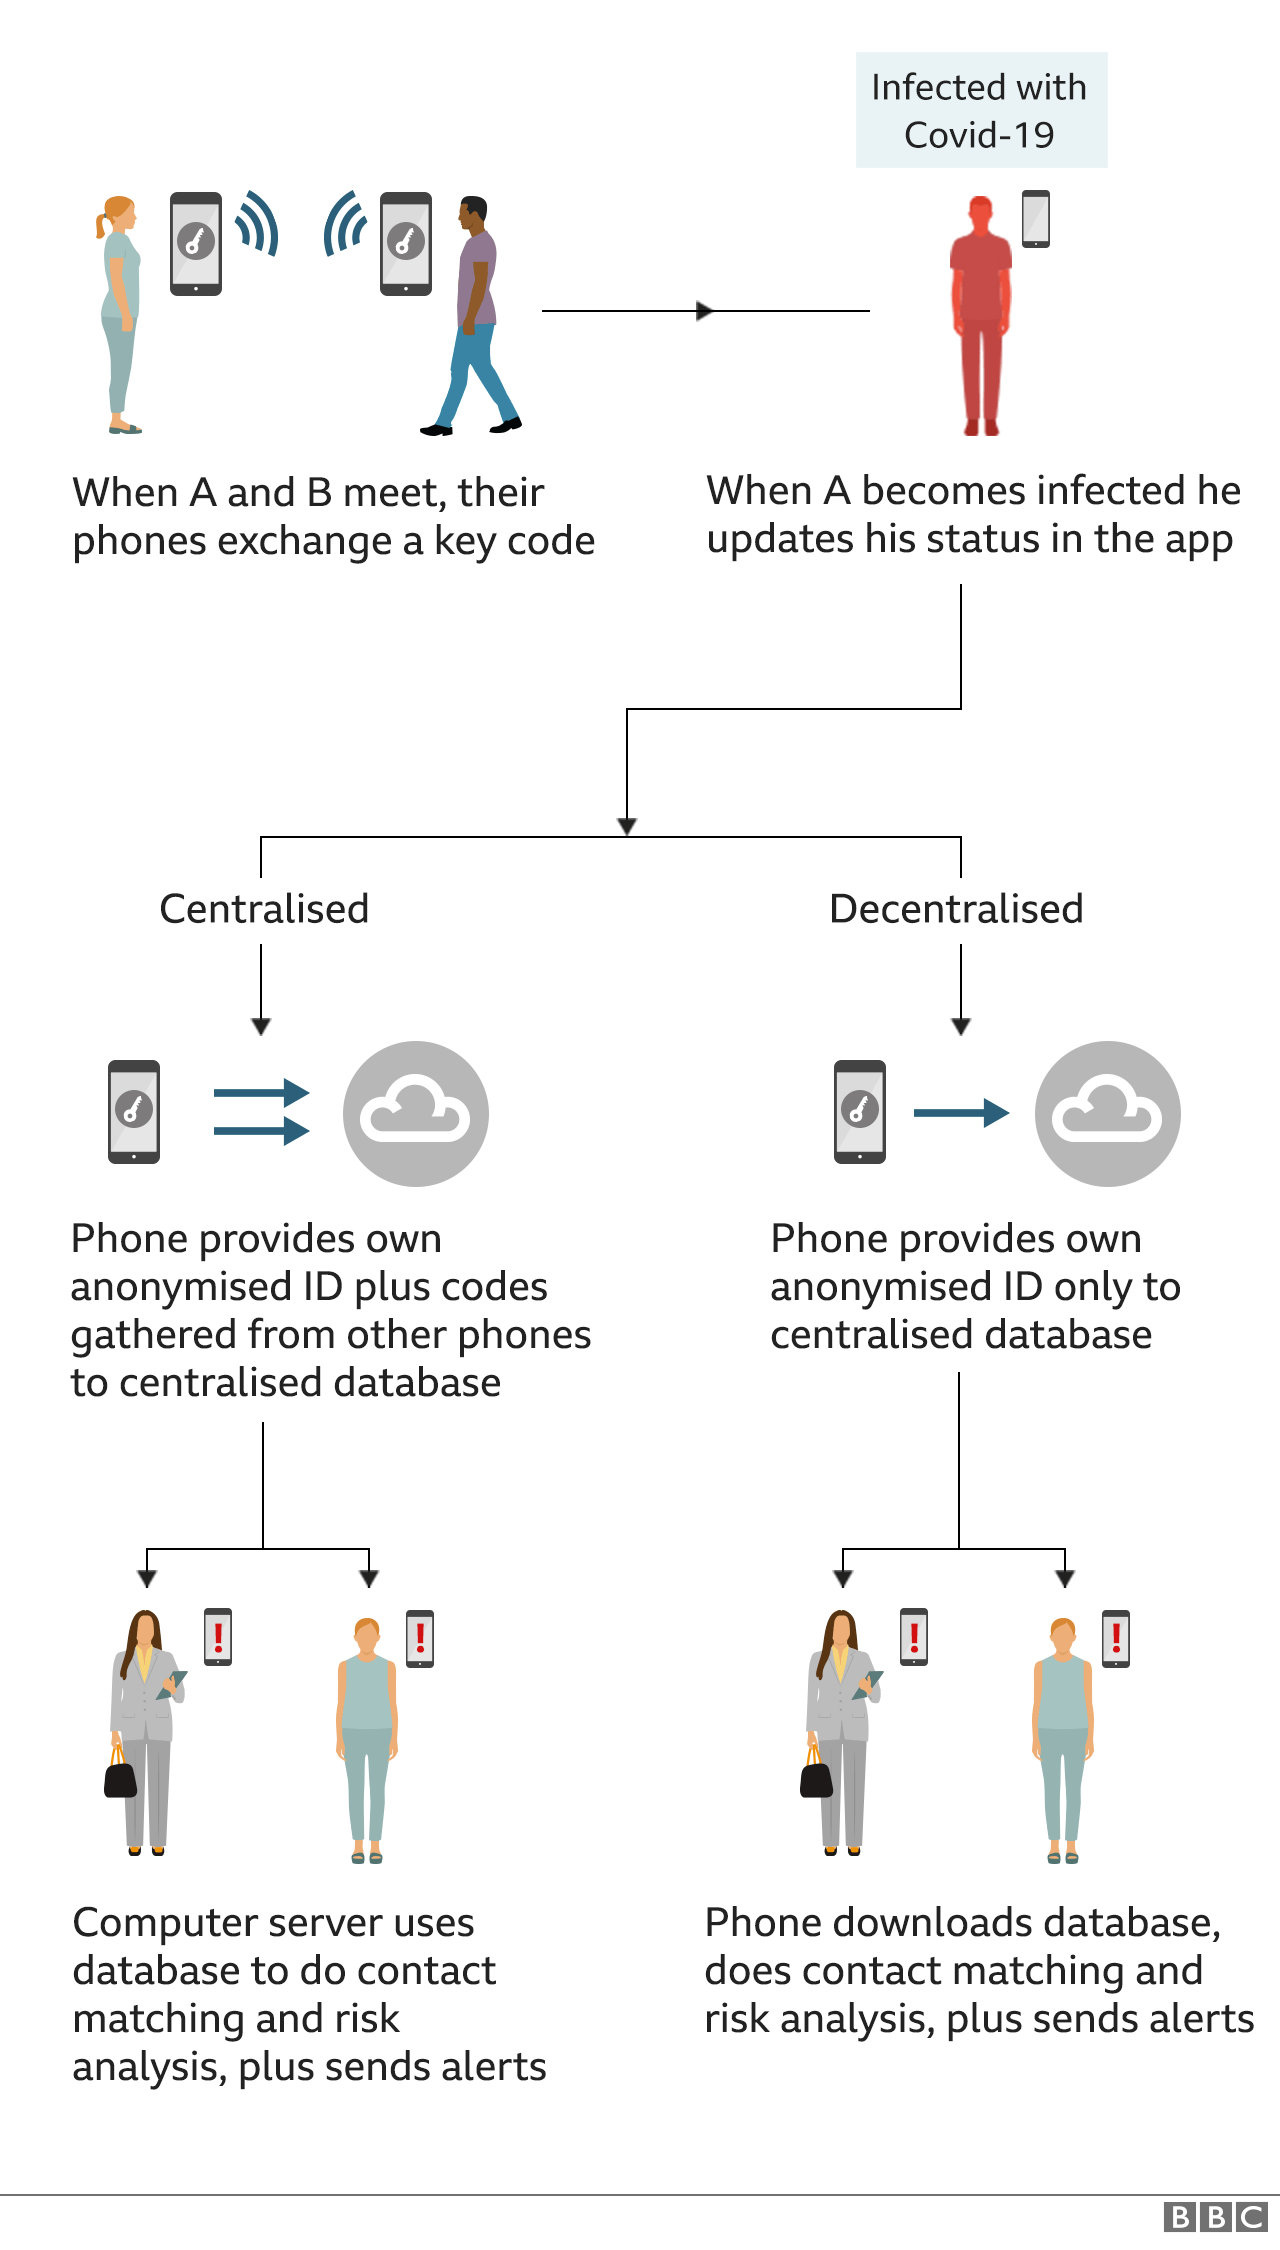 Graphic explaining difference between centralised and decentralised apps